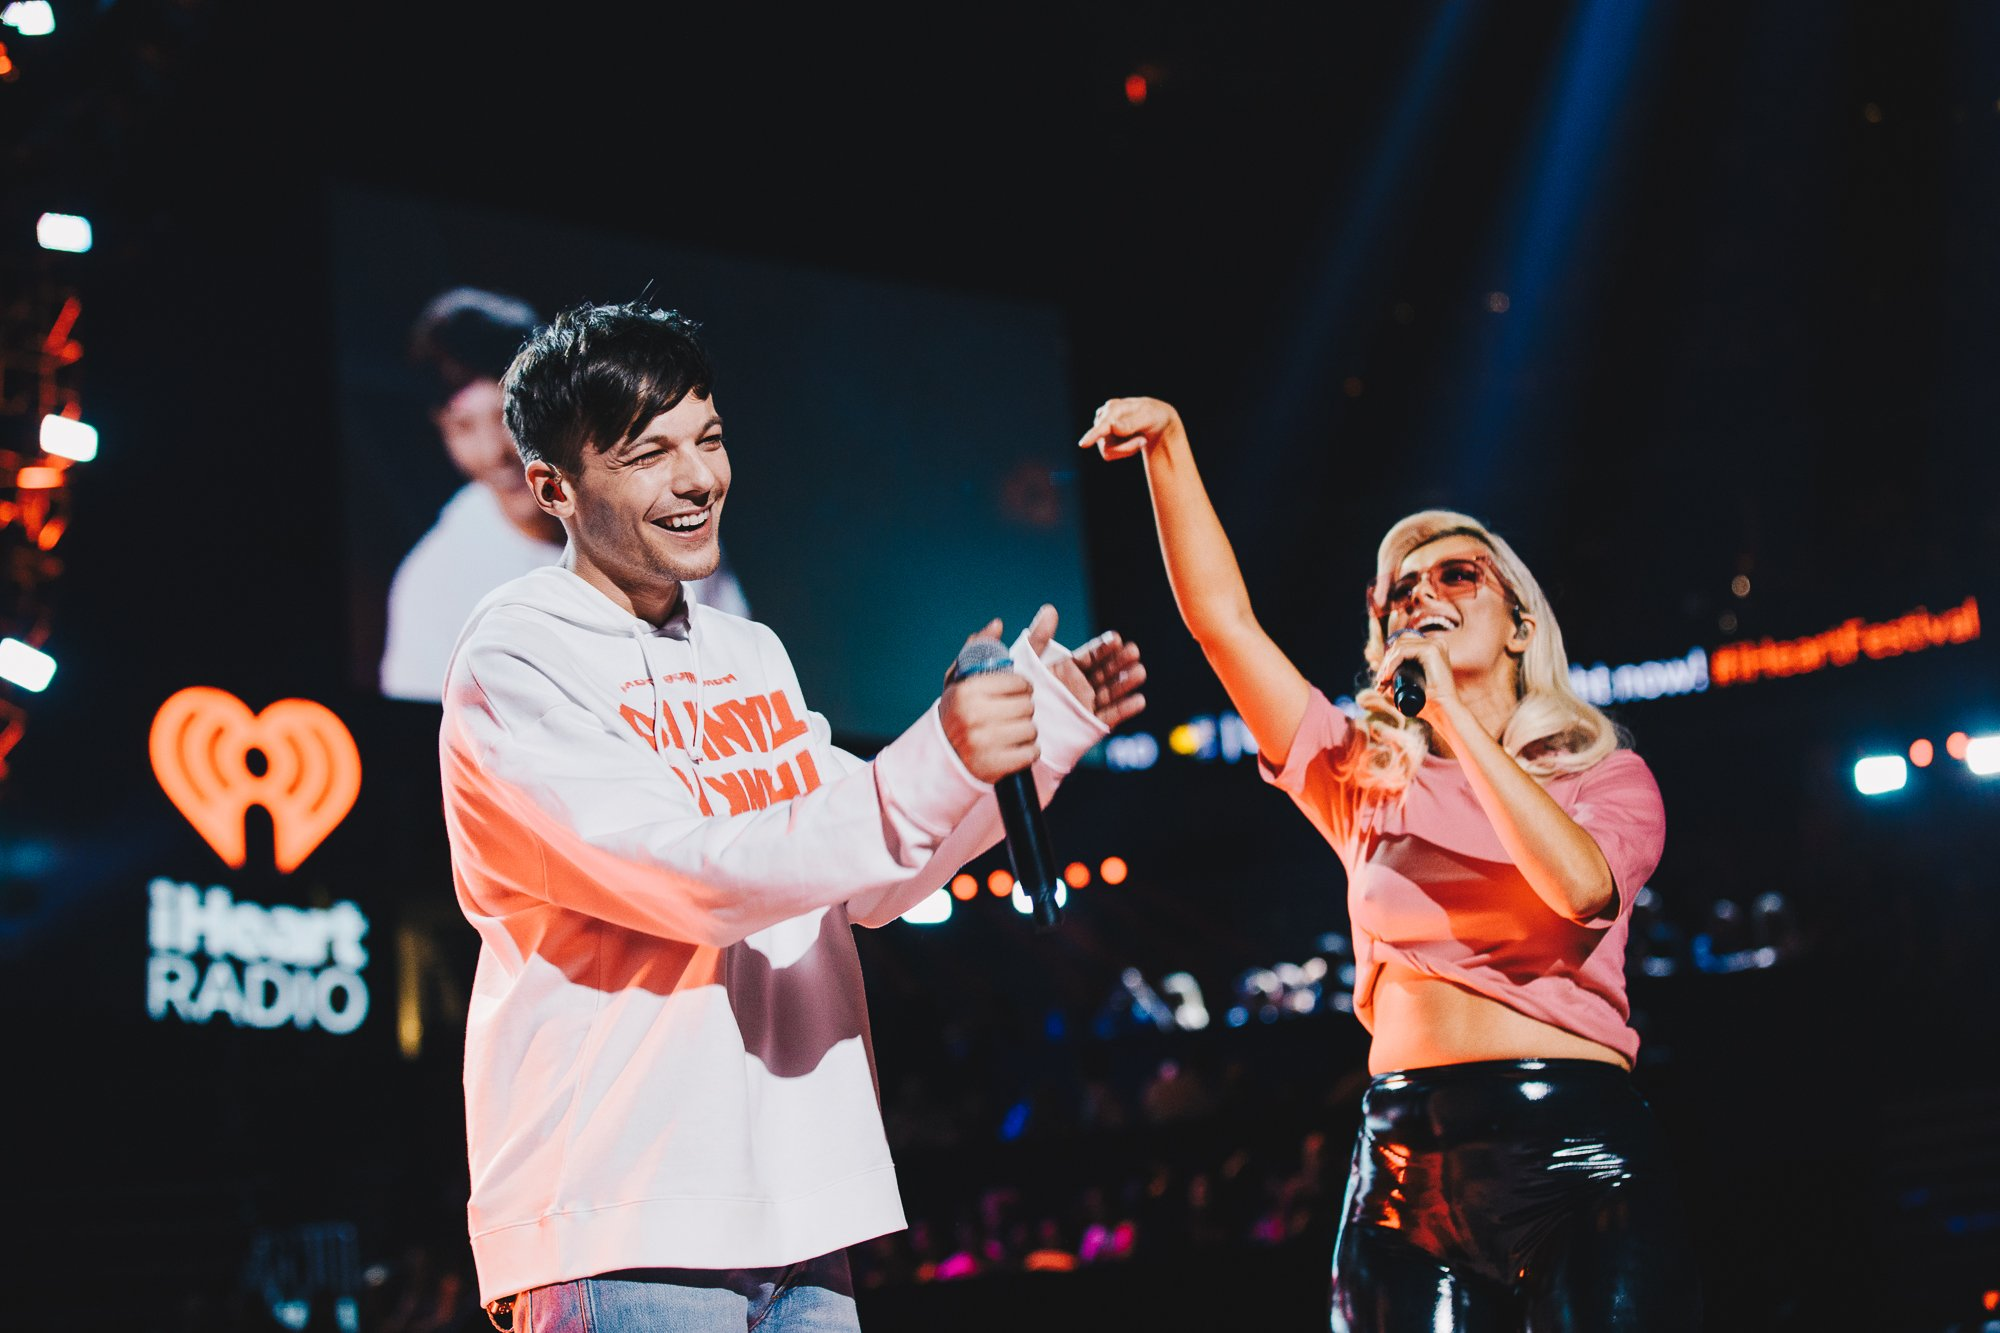 No you @BebeRexha, no you @Louis_Tomlinson! YOU BOTH KILLED IT! #iHeartFestival https://t.co/nKj6zSxfLN